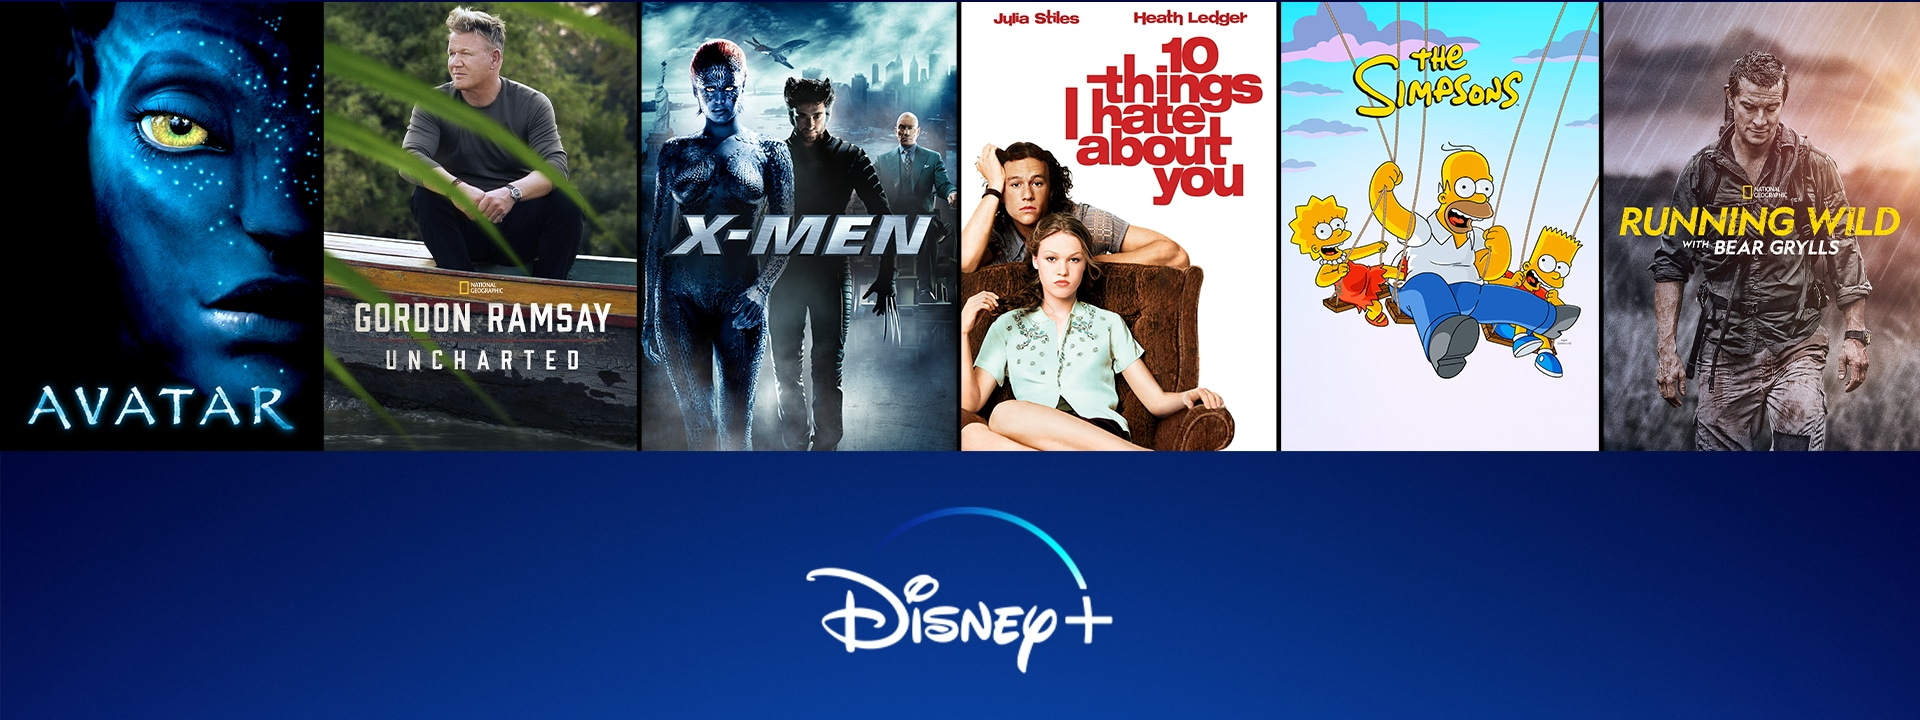 Learn more about Disney+